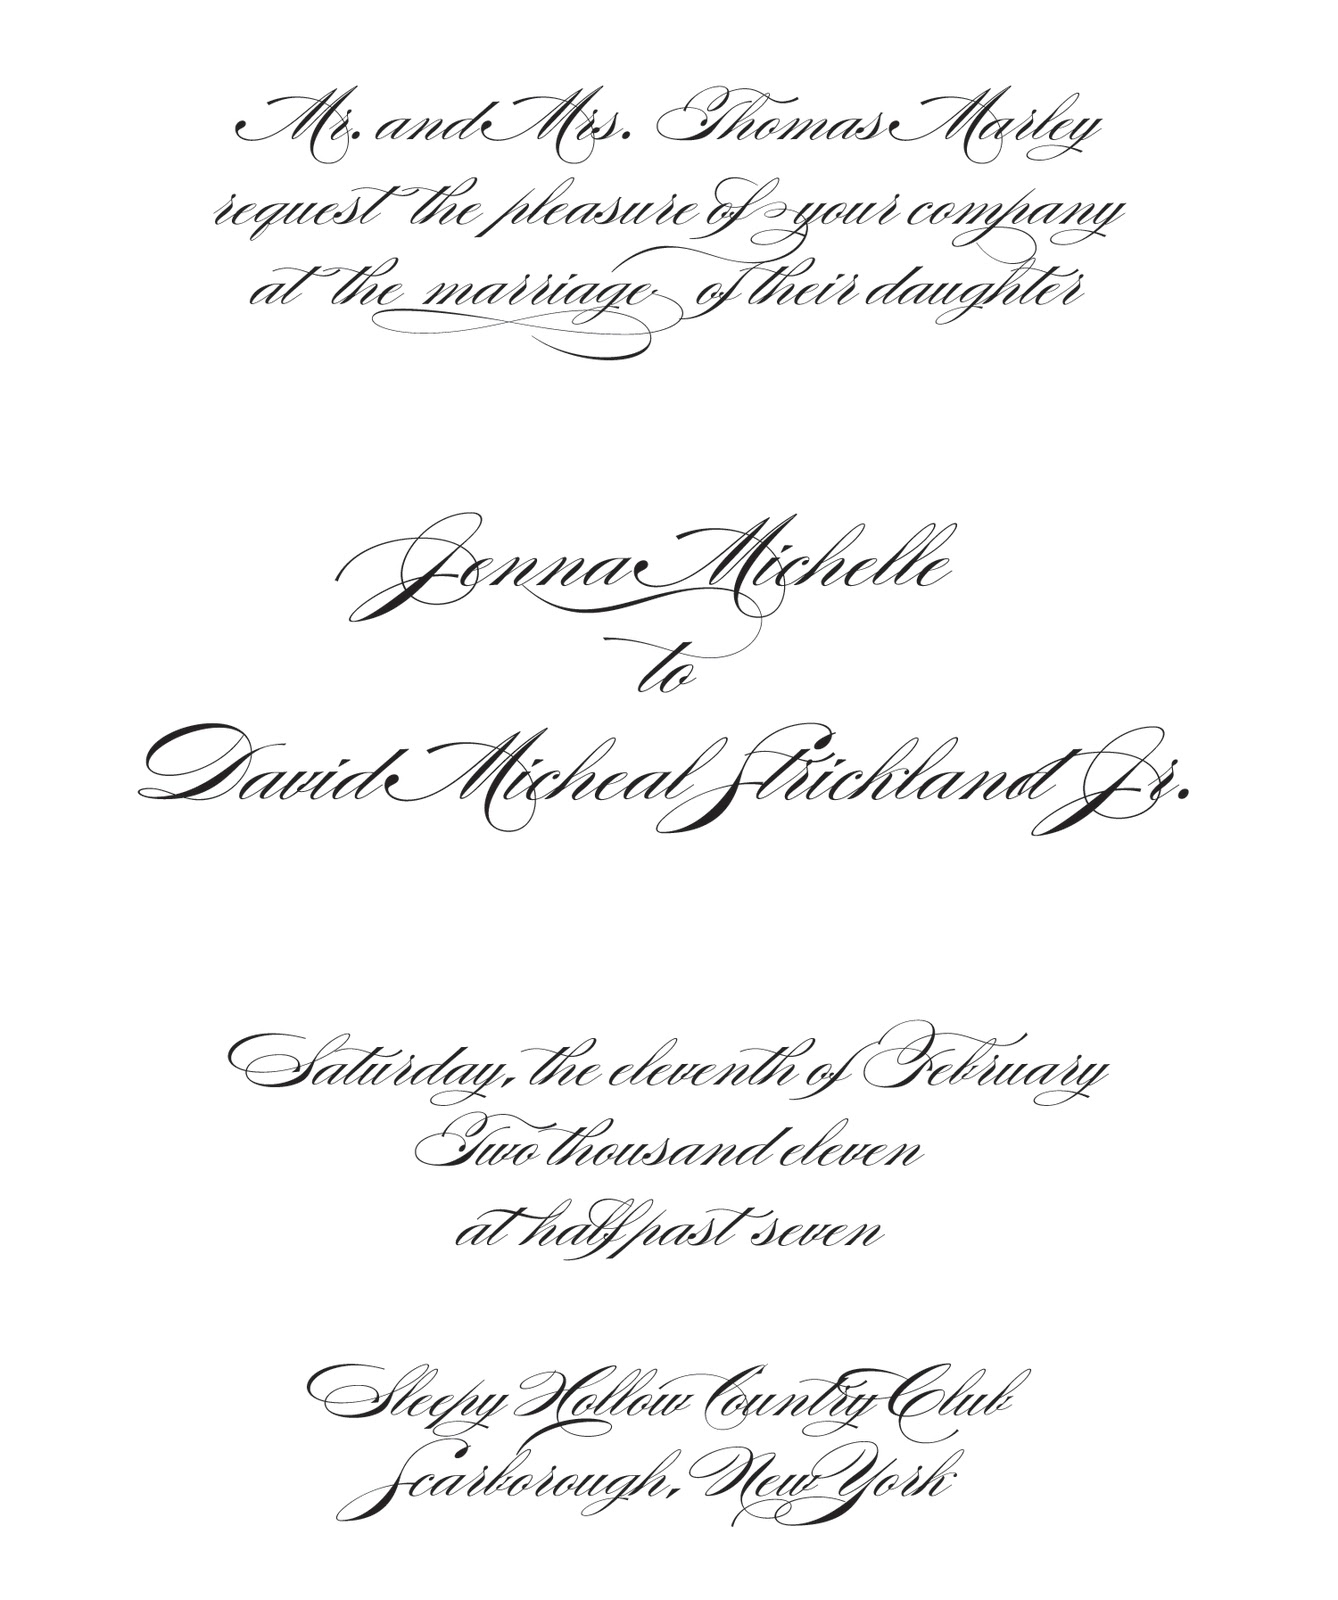 Cry Baby Ink: How to Word a Wedding Invitation - The 6 Essentials